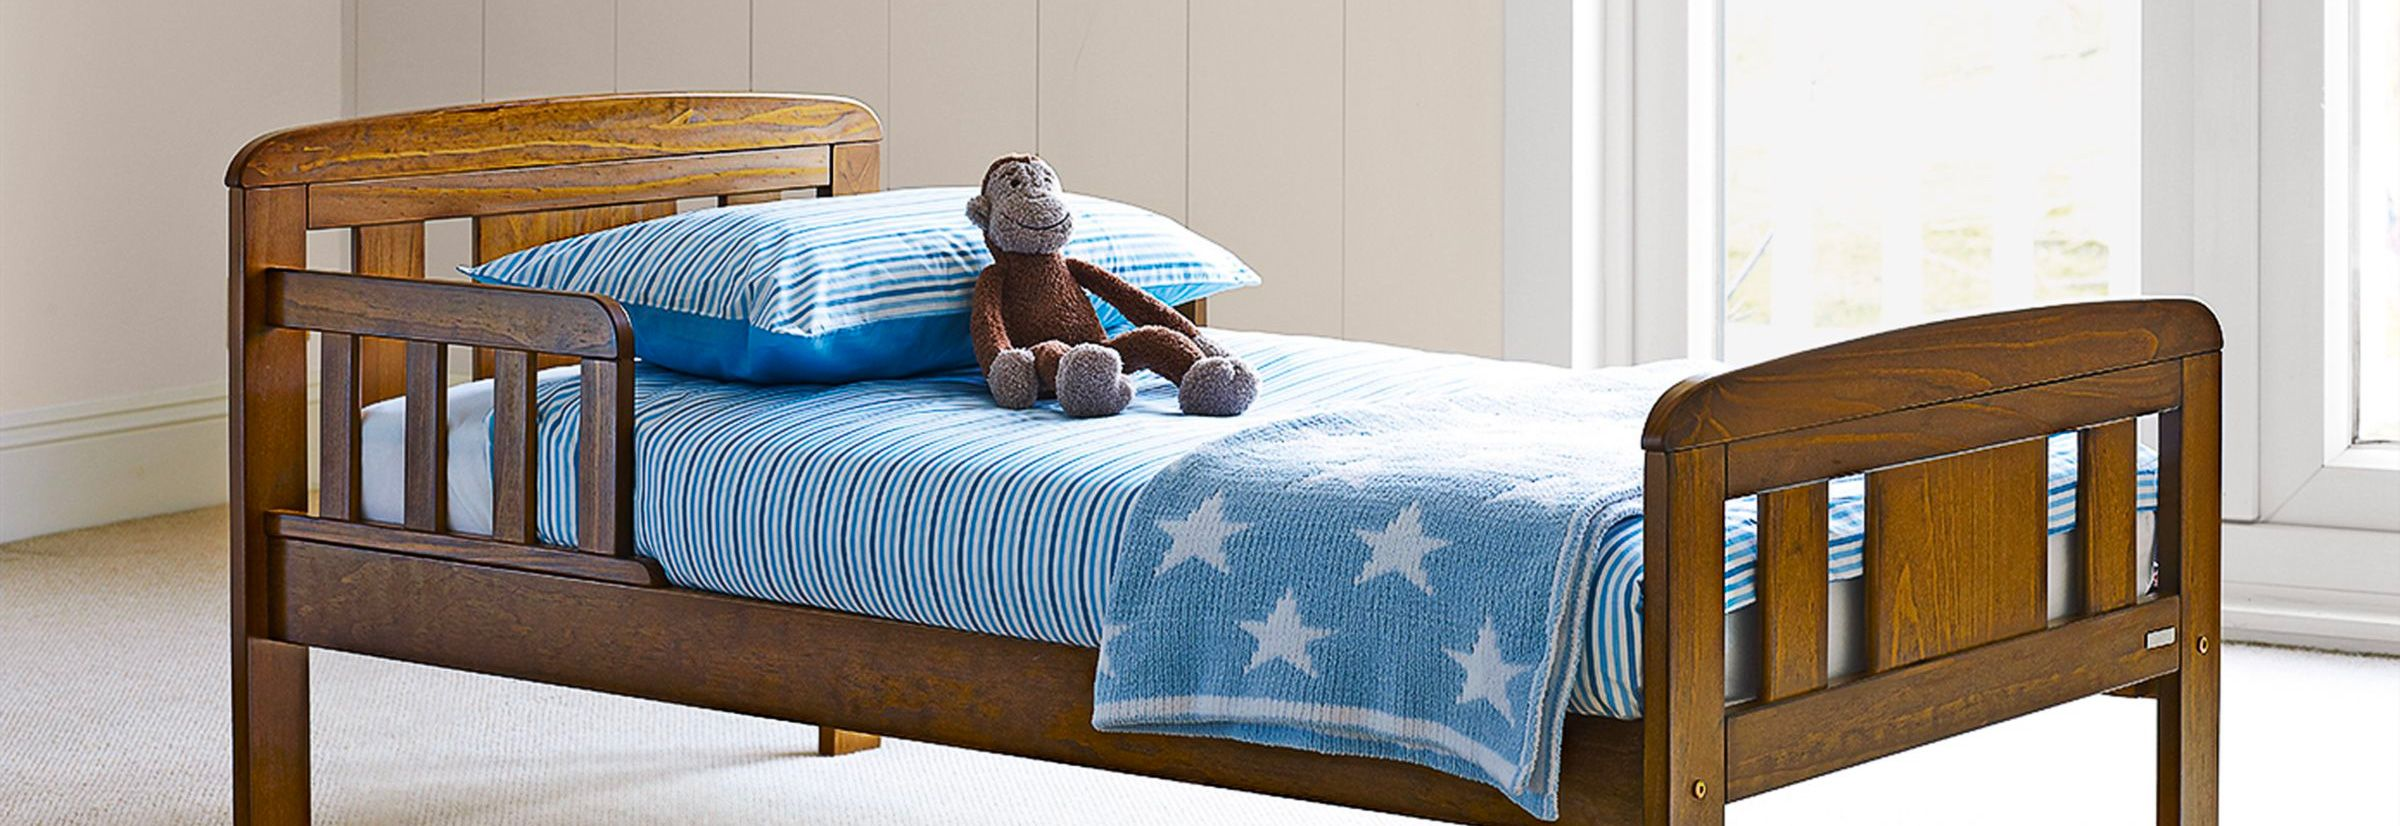 Create a child-friendly bedroom